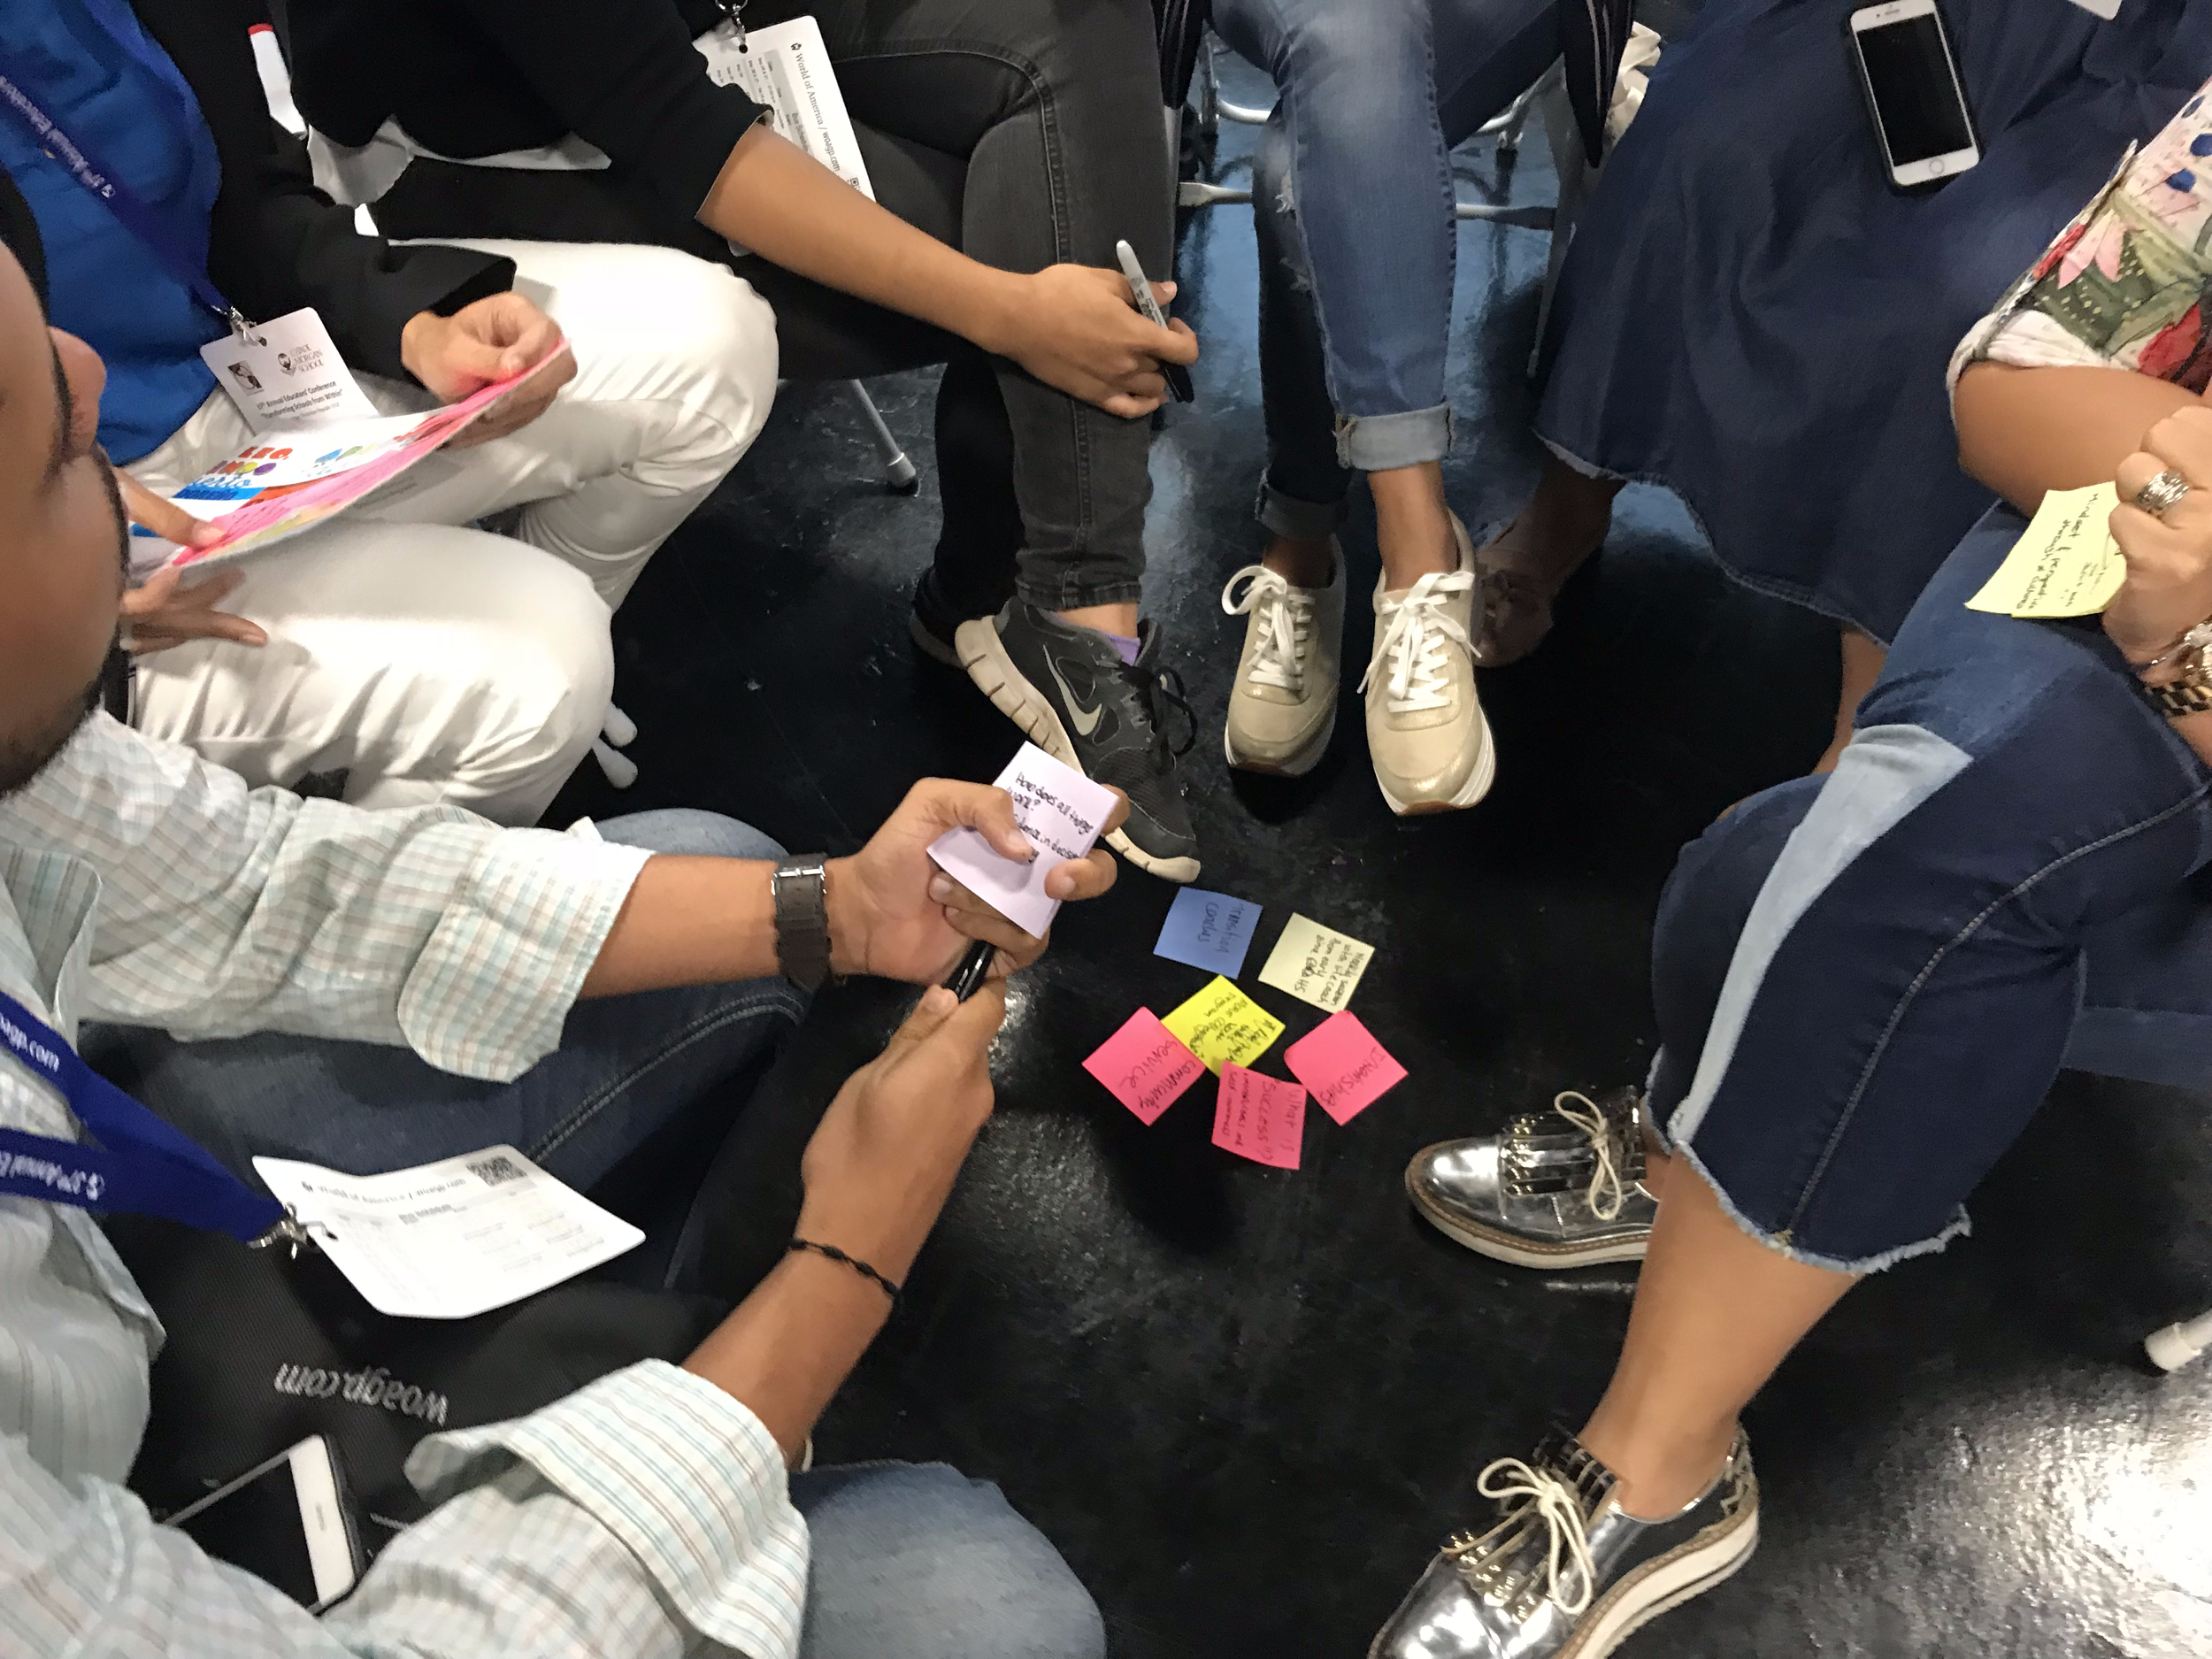 Fall 2019 - Fall 2020 - Design teams conduct site-based design activities with support from TDI advisors.